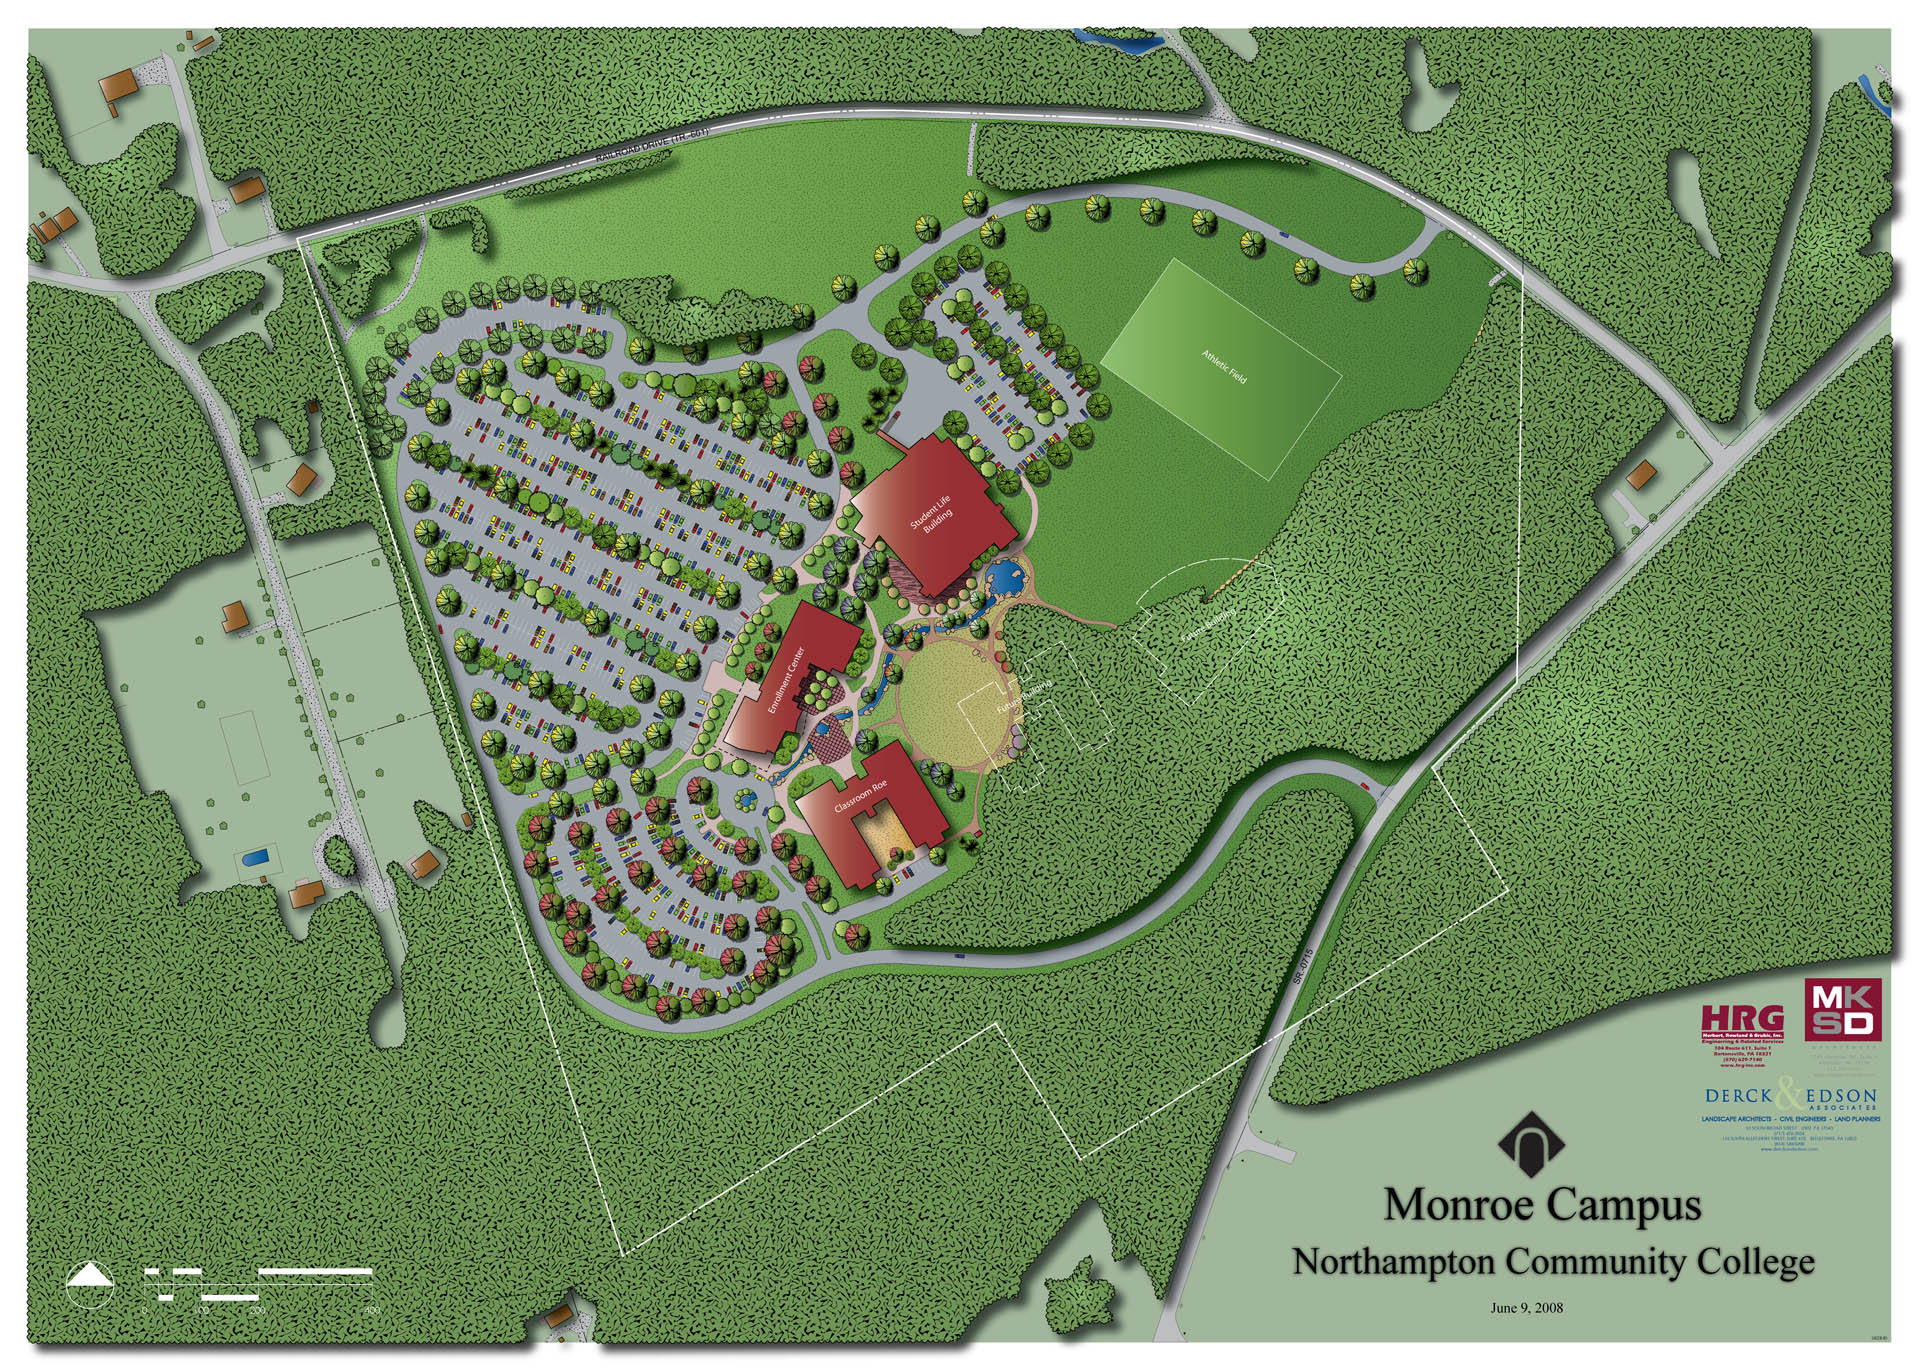 Northampton Community College Monroe Plan